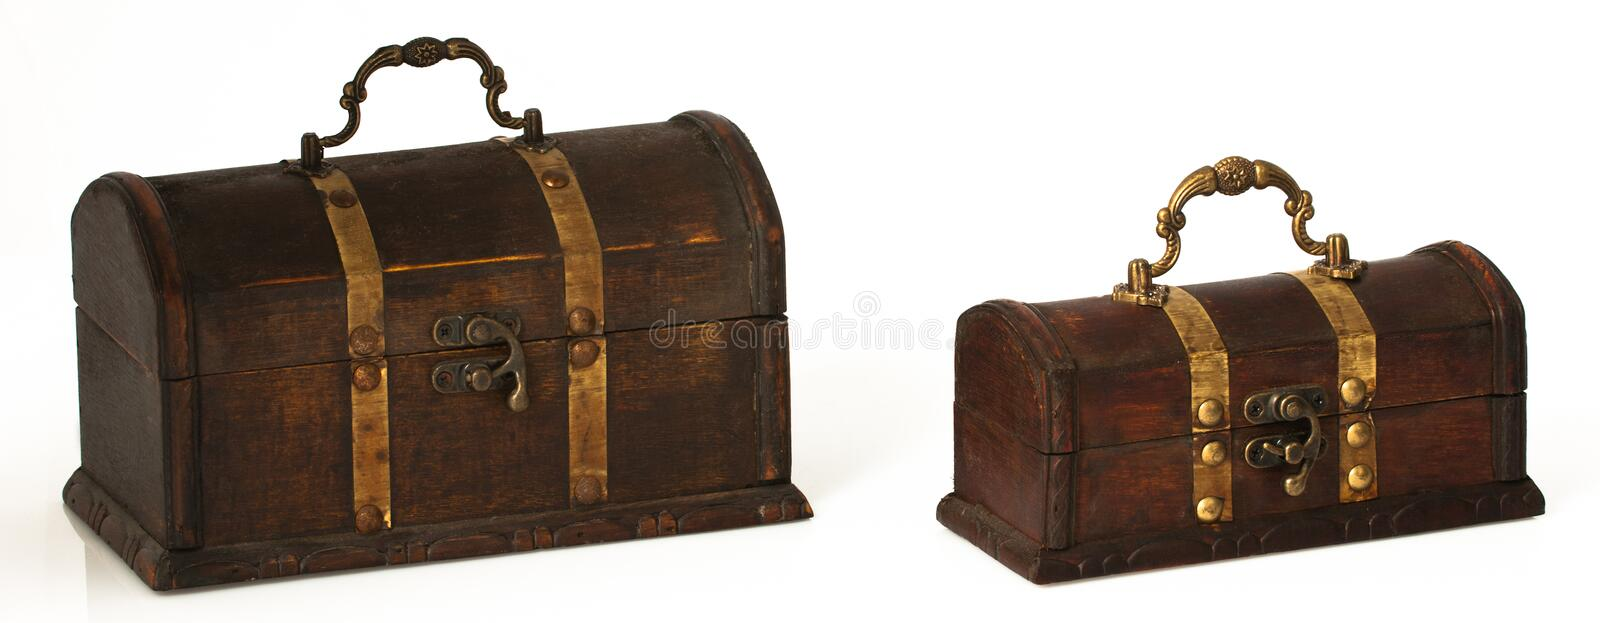 Download Two Dark Wooden Chests On A White Background Stock Image - Image: 17409745